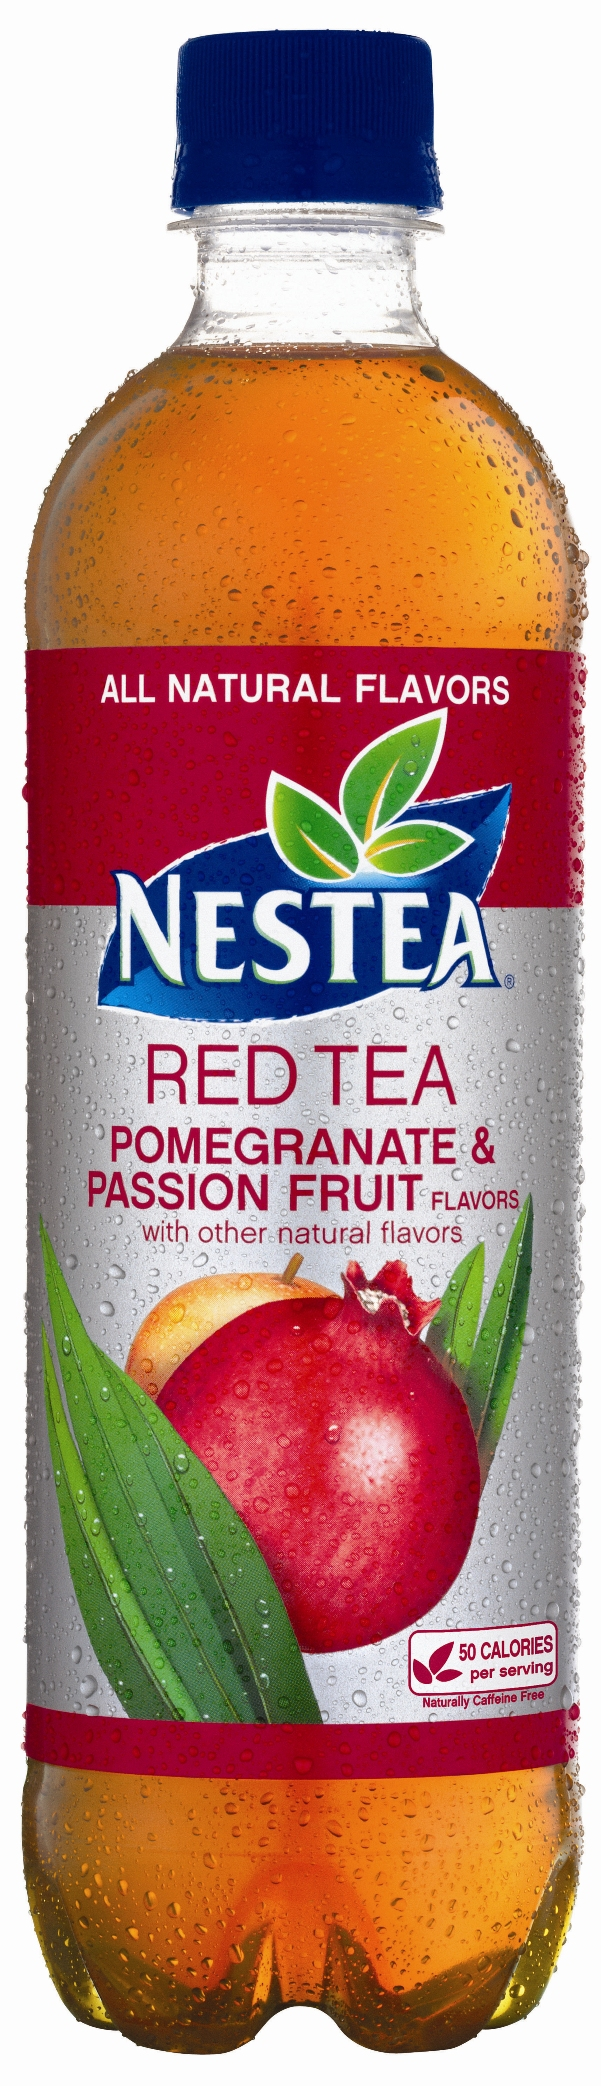 nestea_red_tea